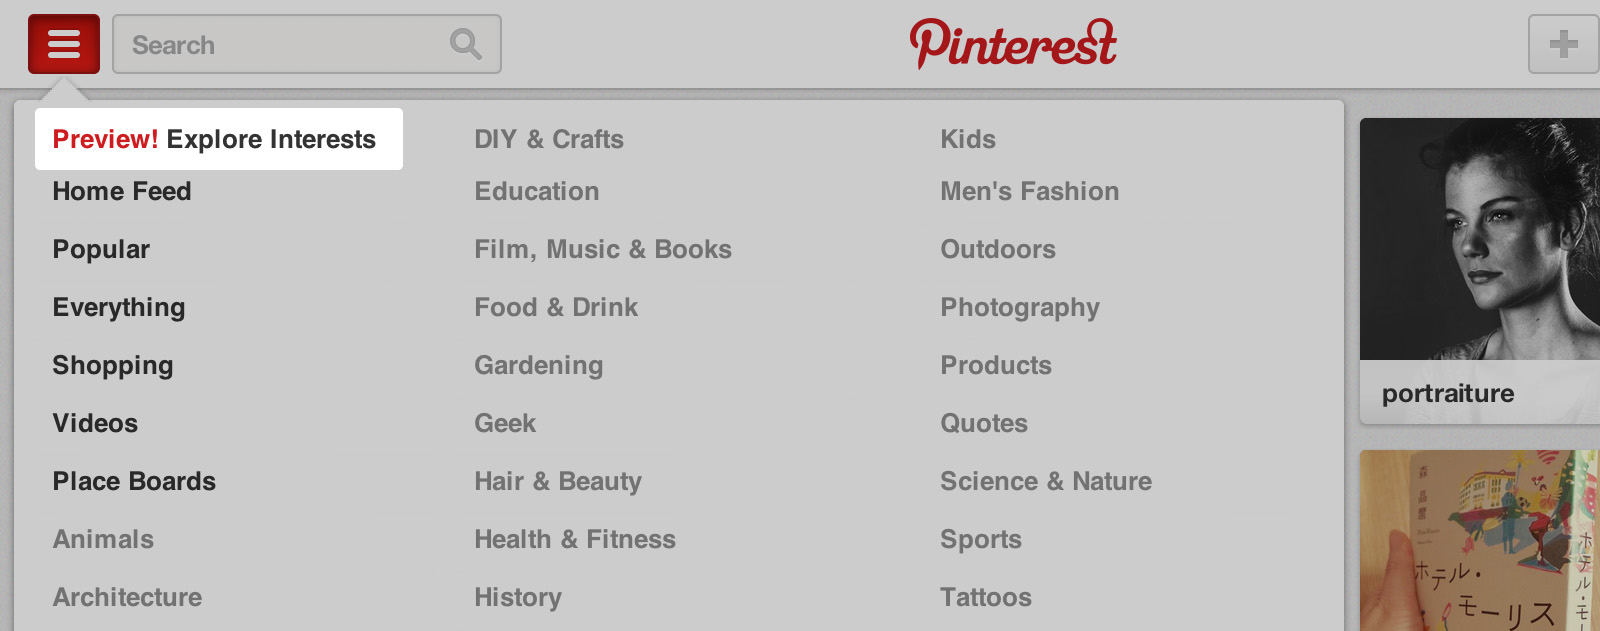 Pinterest launches Interests, a tool to let users explore topics and find pins they like